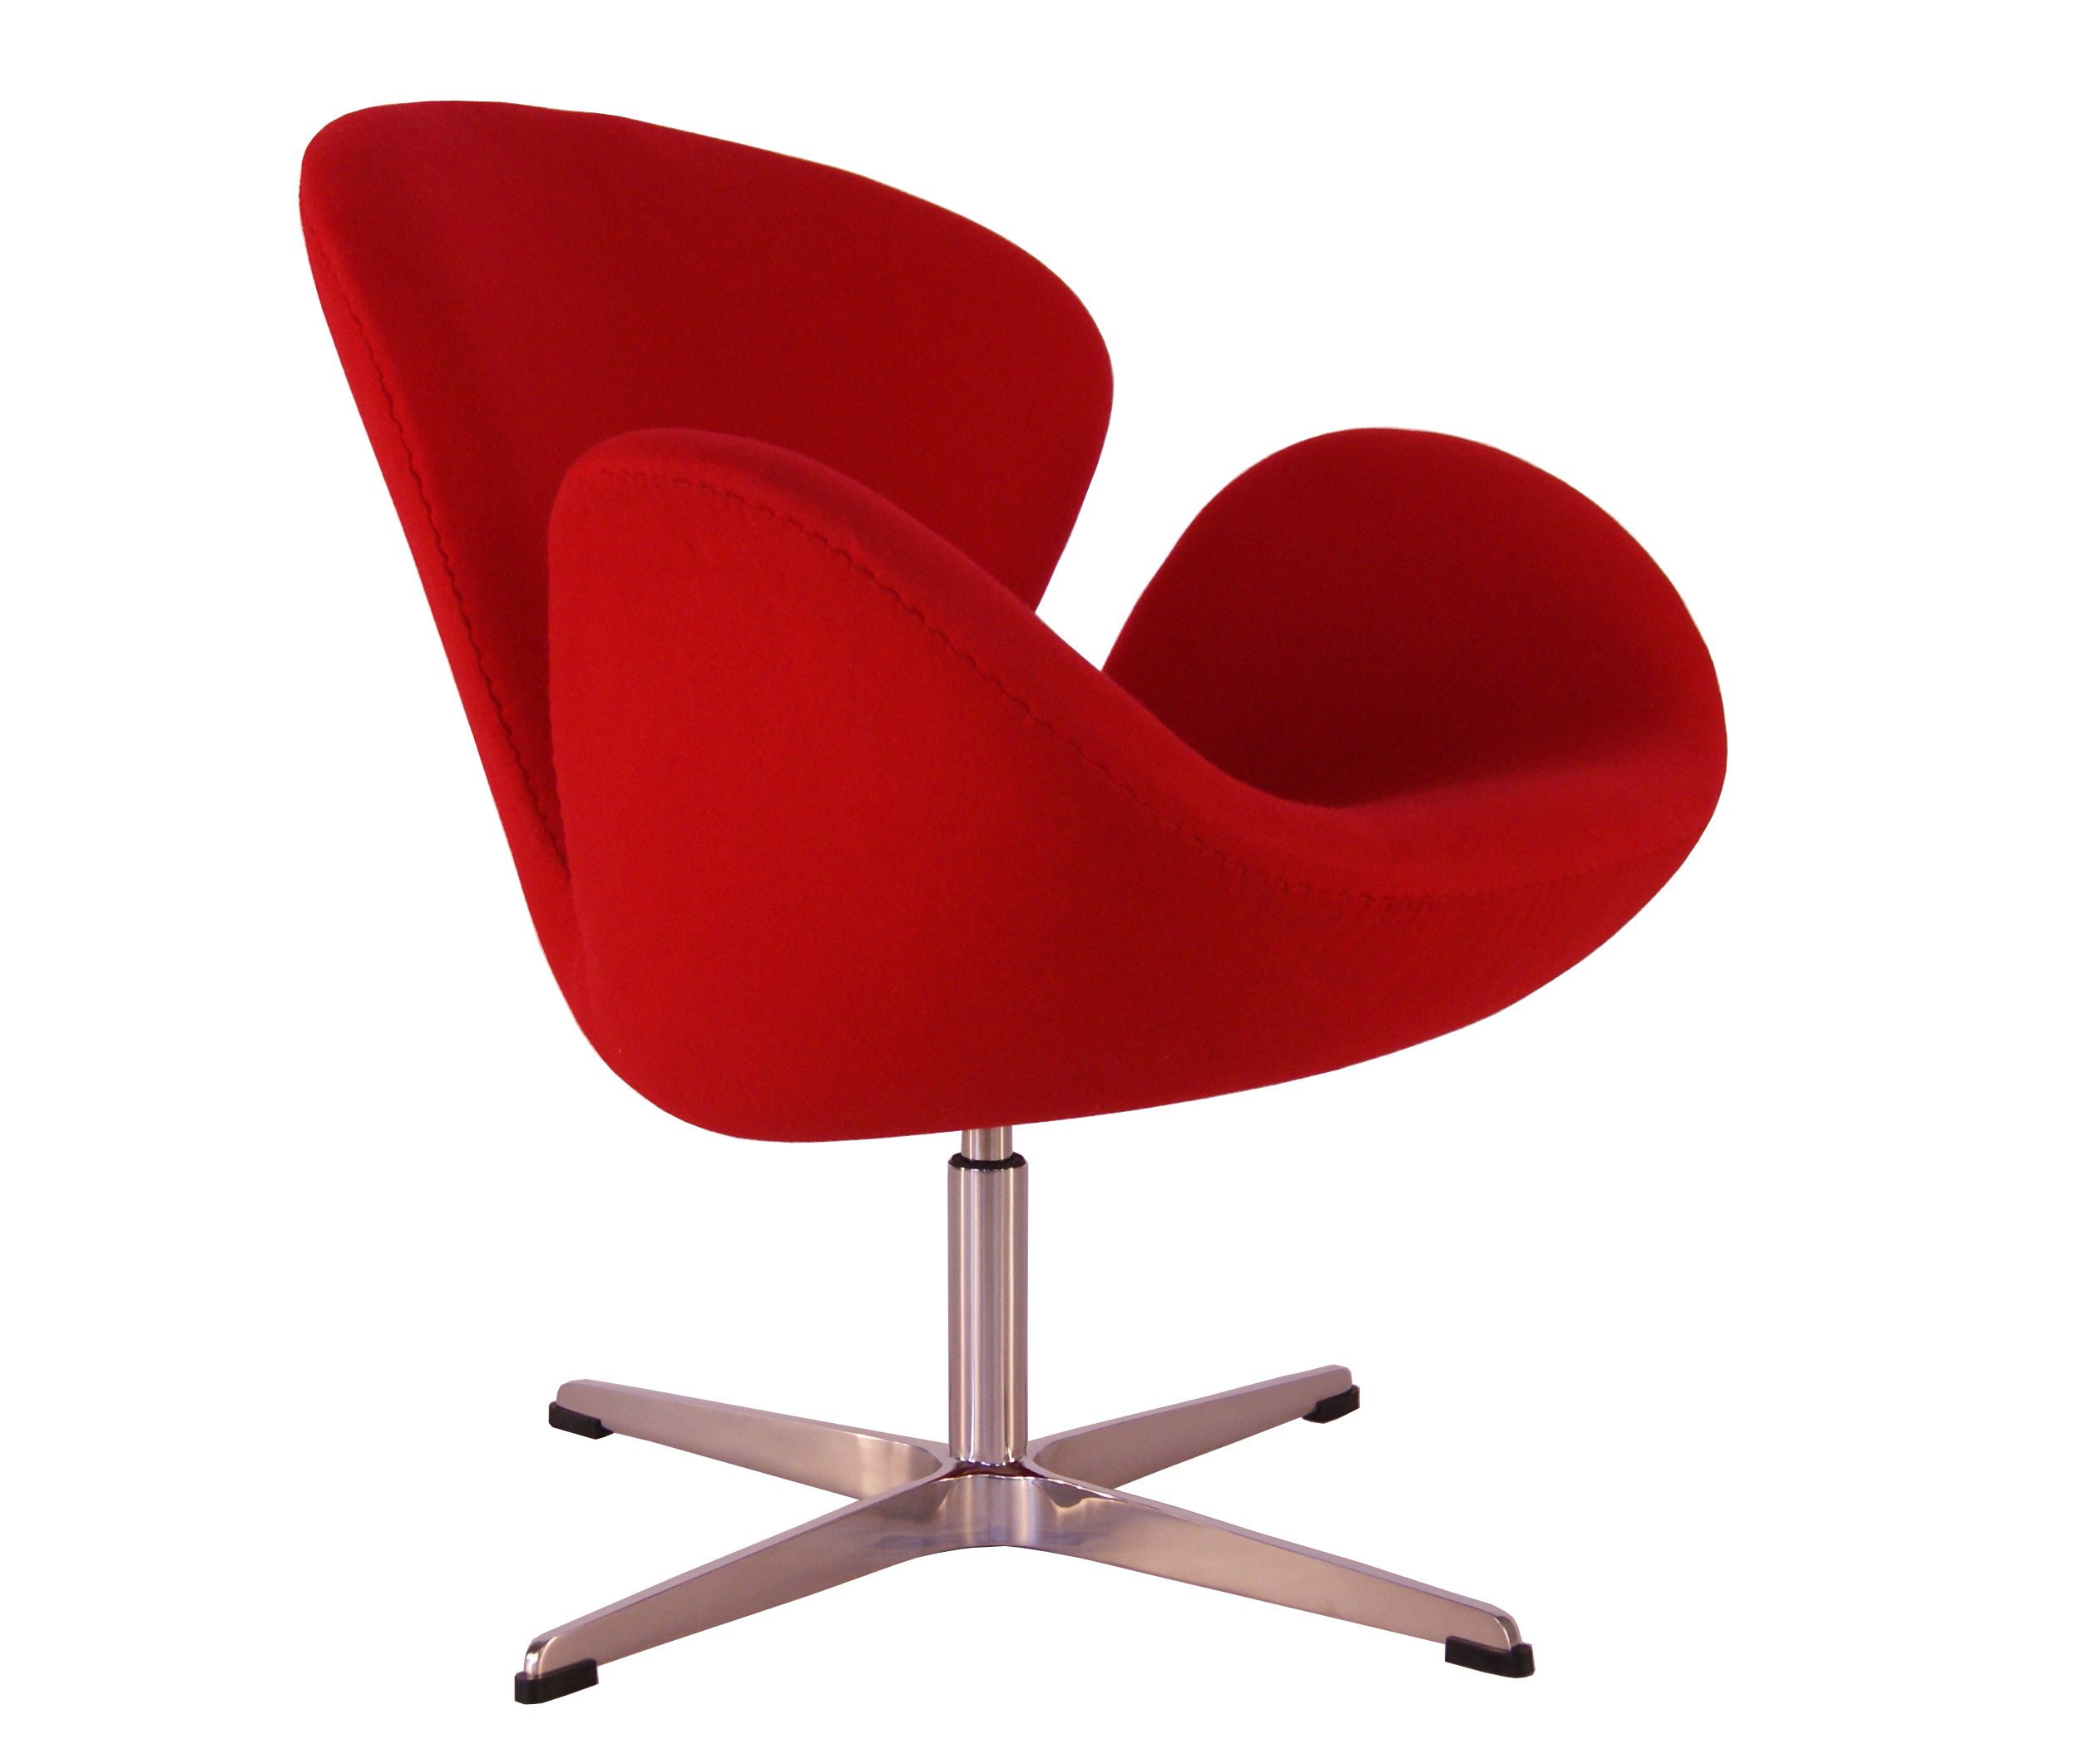 Chaise design rouge - Chaise rouge pas cher ...